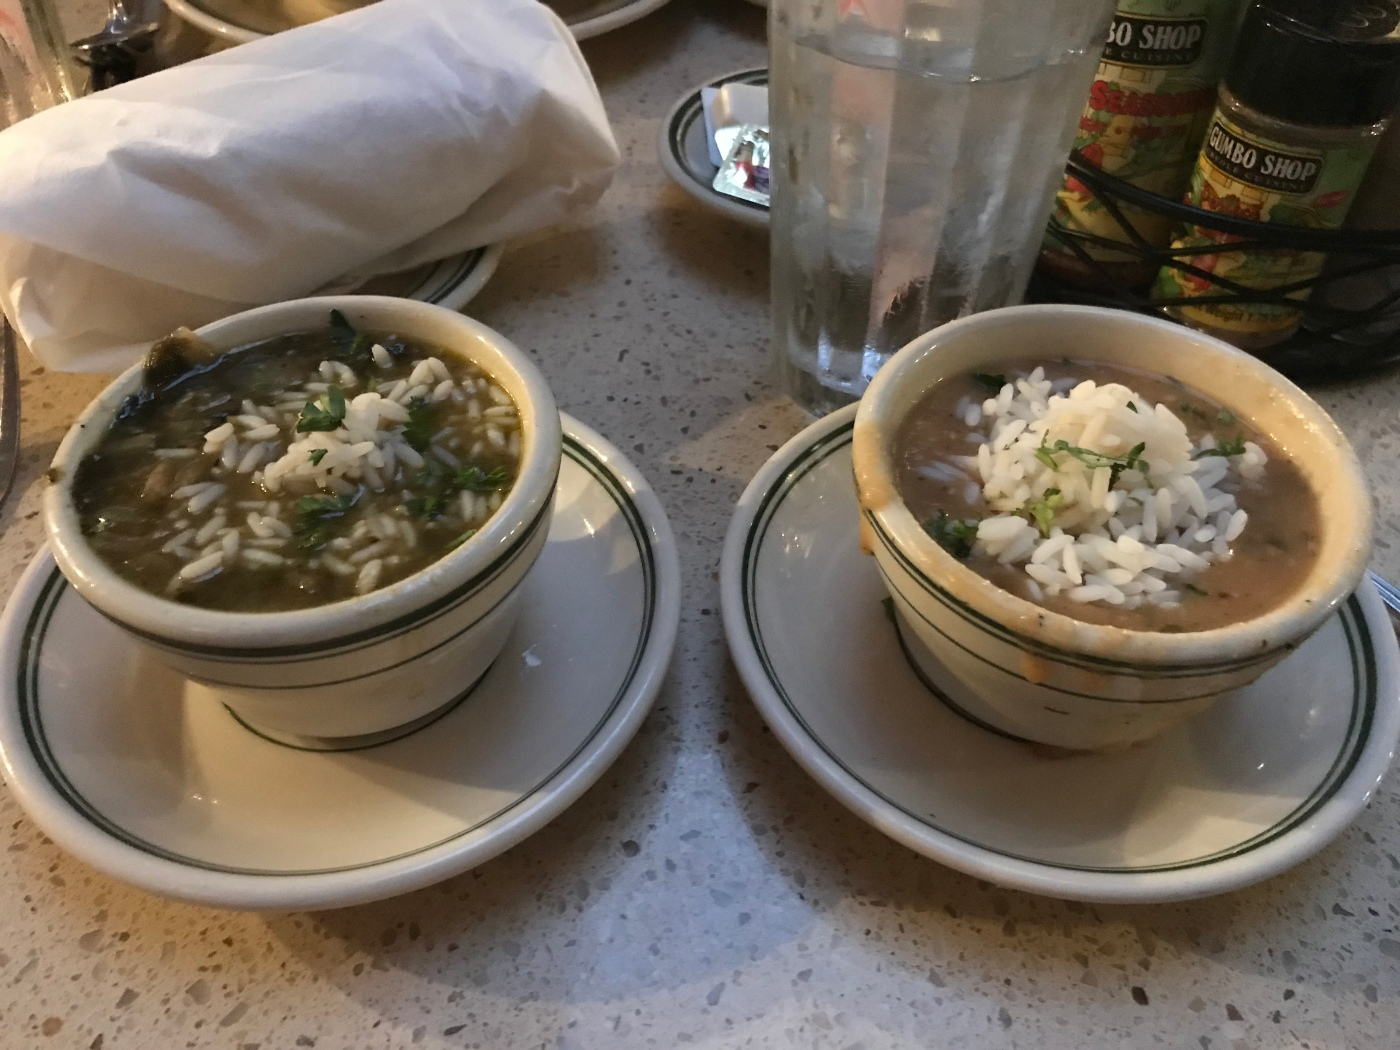 vegan gumbo from the Gumbo Shop in New Orleans